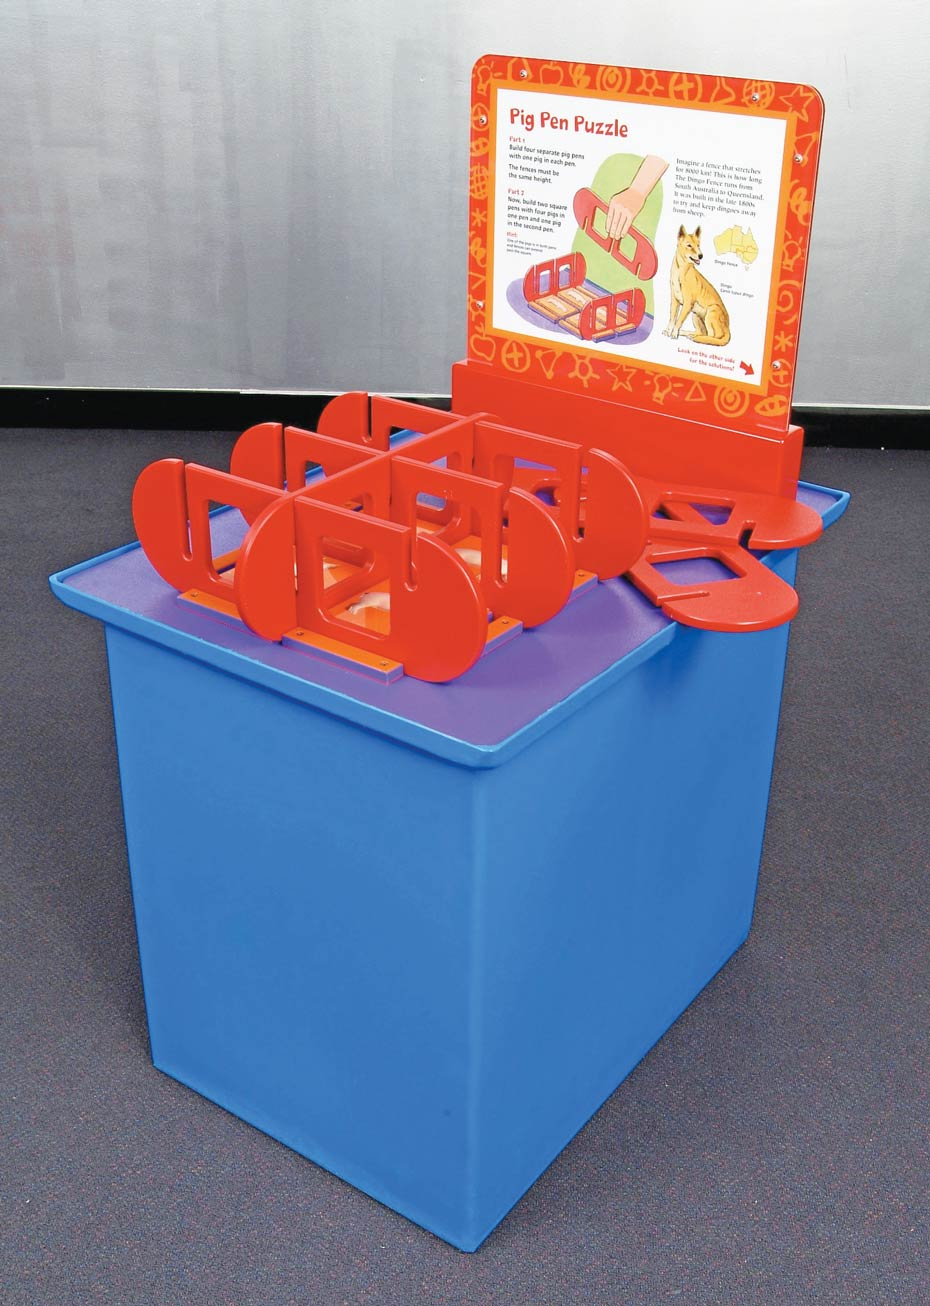 A purple exhibit table, with a white and orange information panel at the back. On top sits a series of red puzzles pieces that fit together to form enclosures.